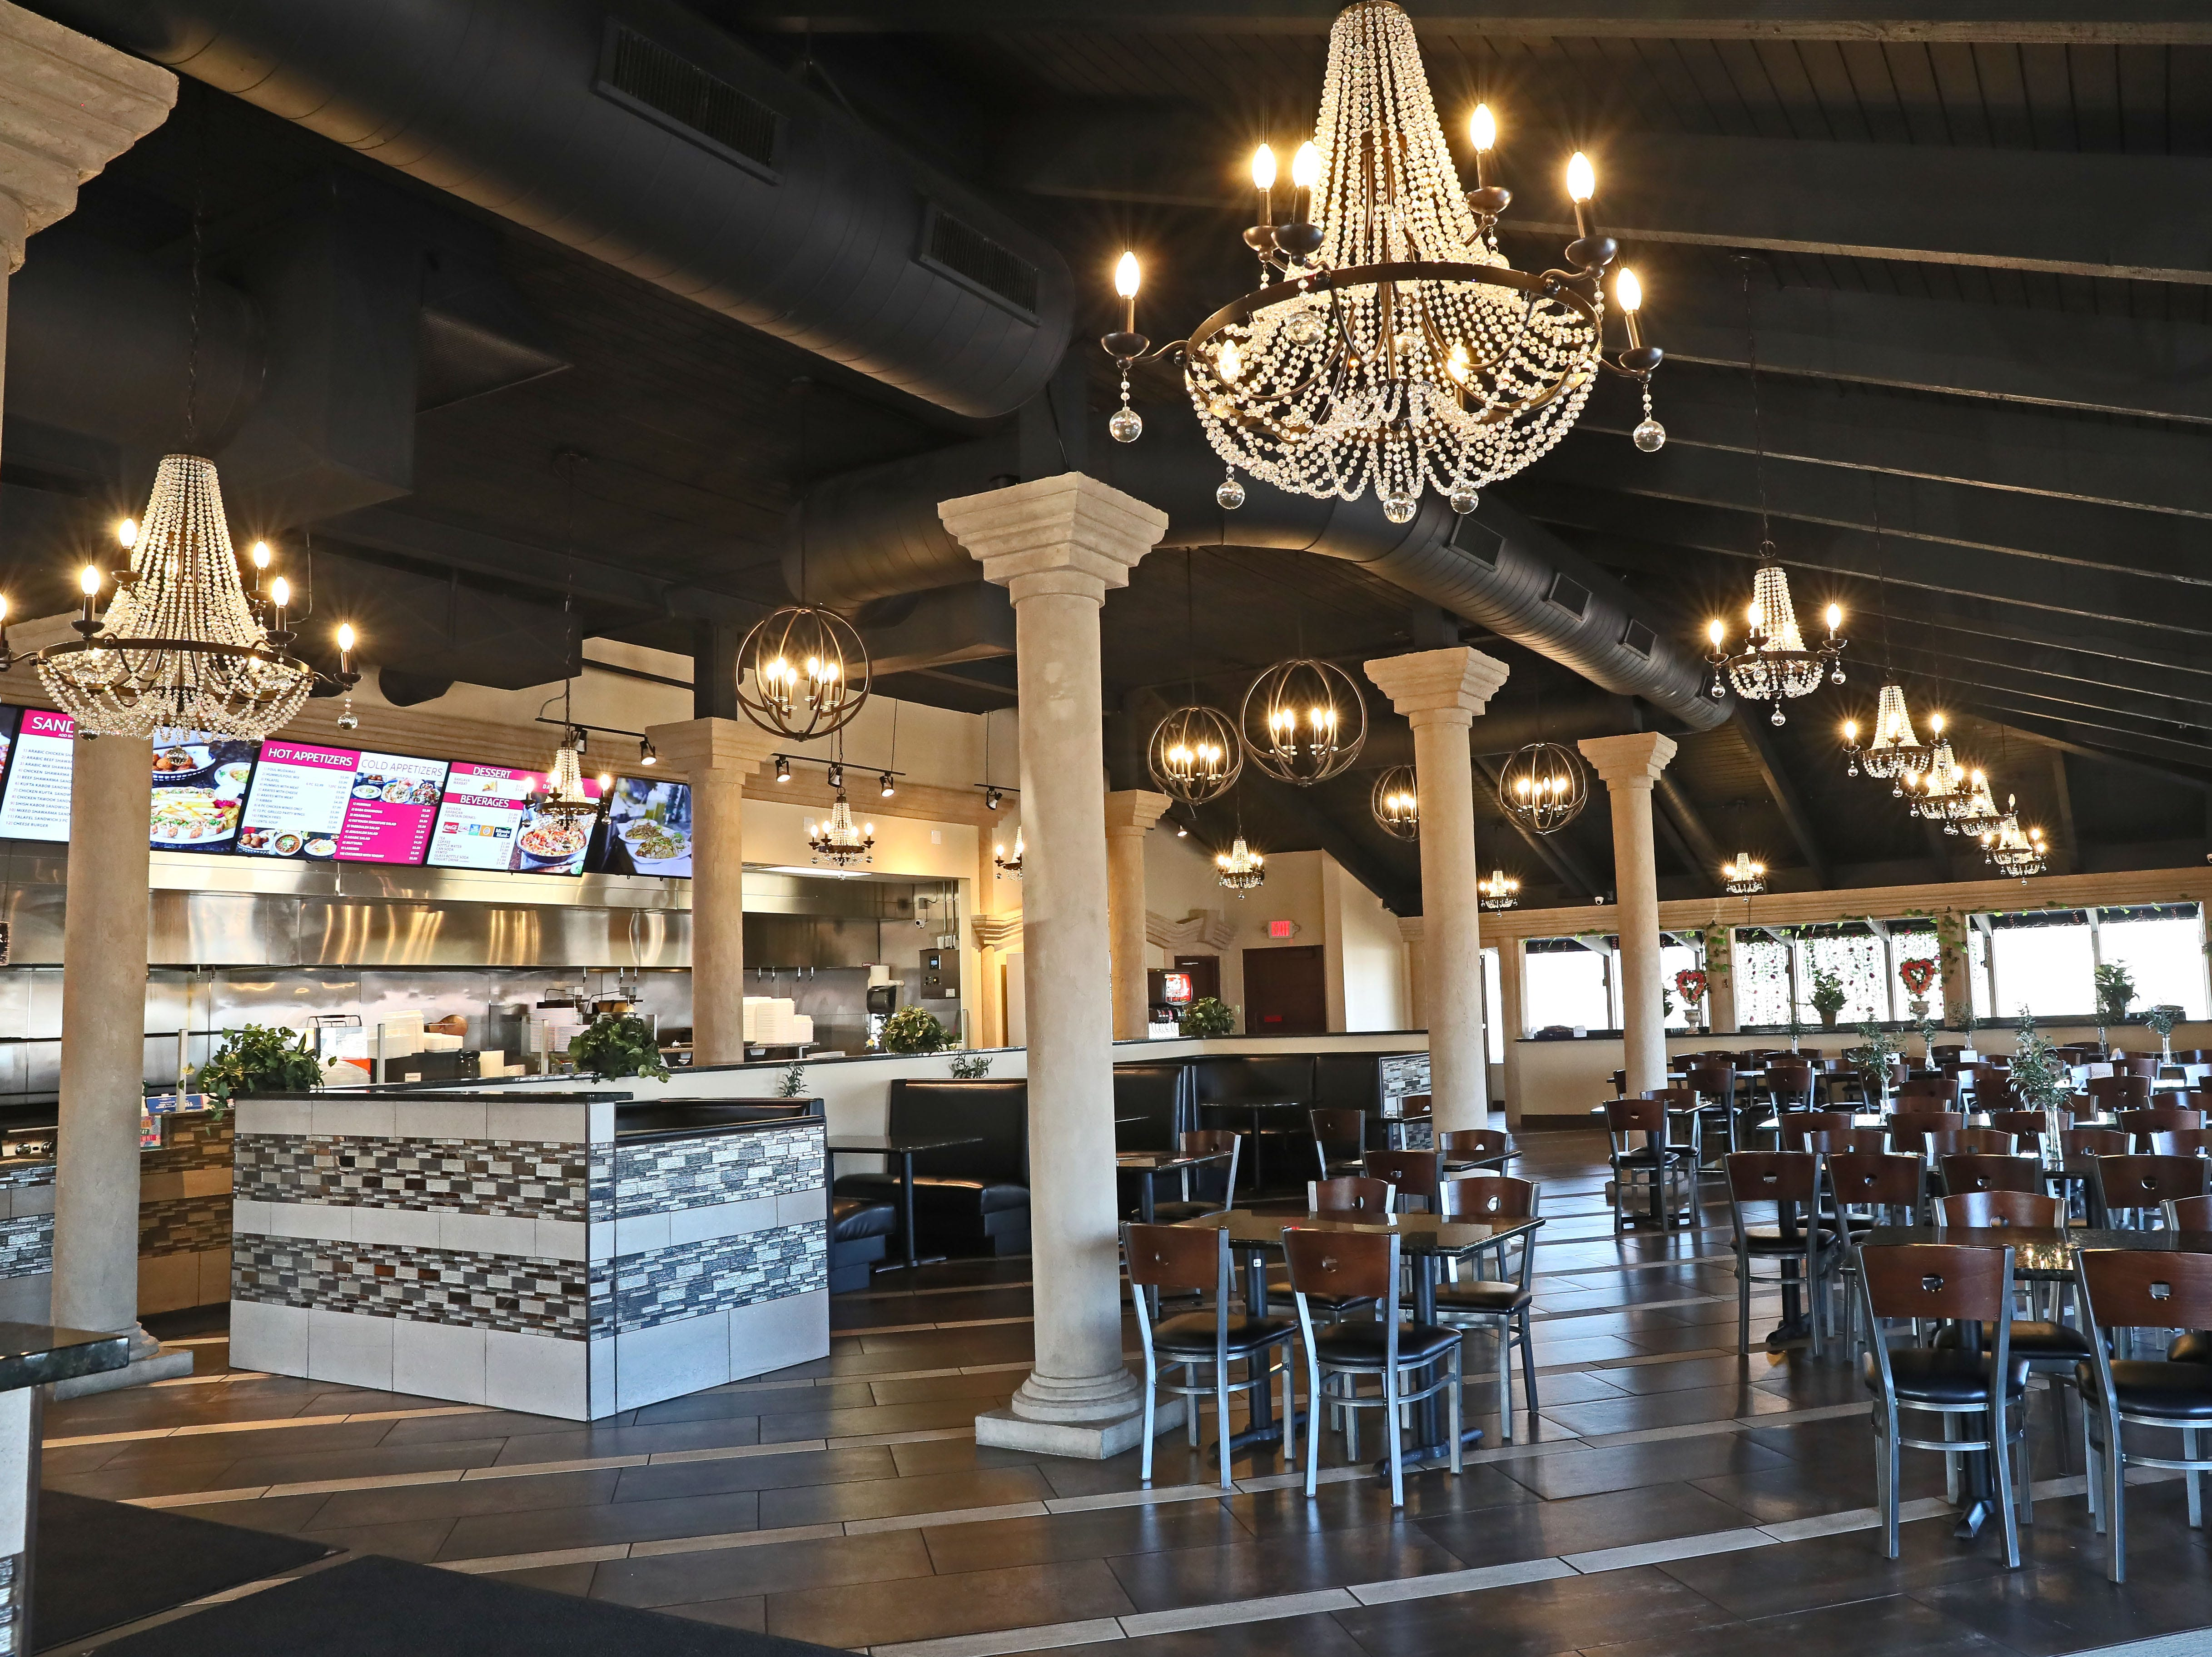 The owners of Pita Palace completely remade the interior of 789 W. Layton Ave., adding chandeliers, decorative columns and granite for tabletops and counters.